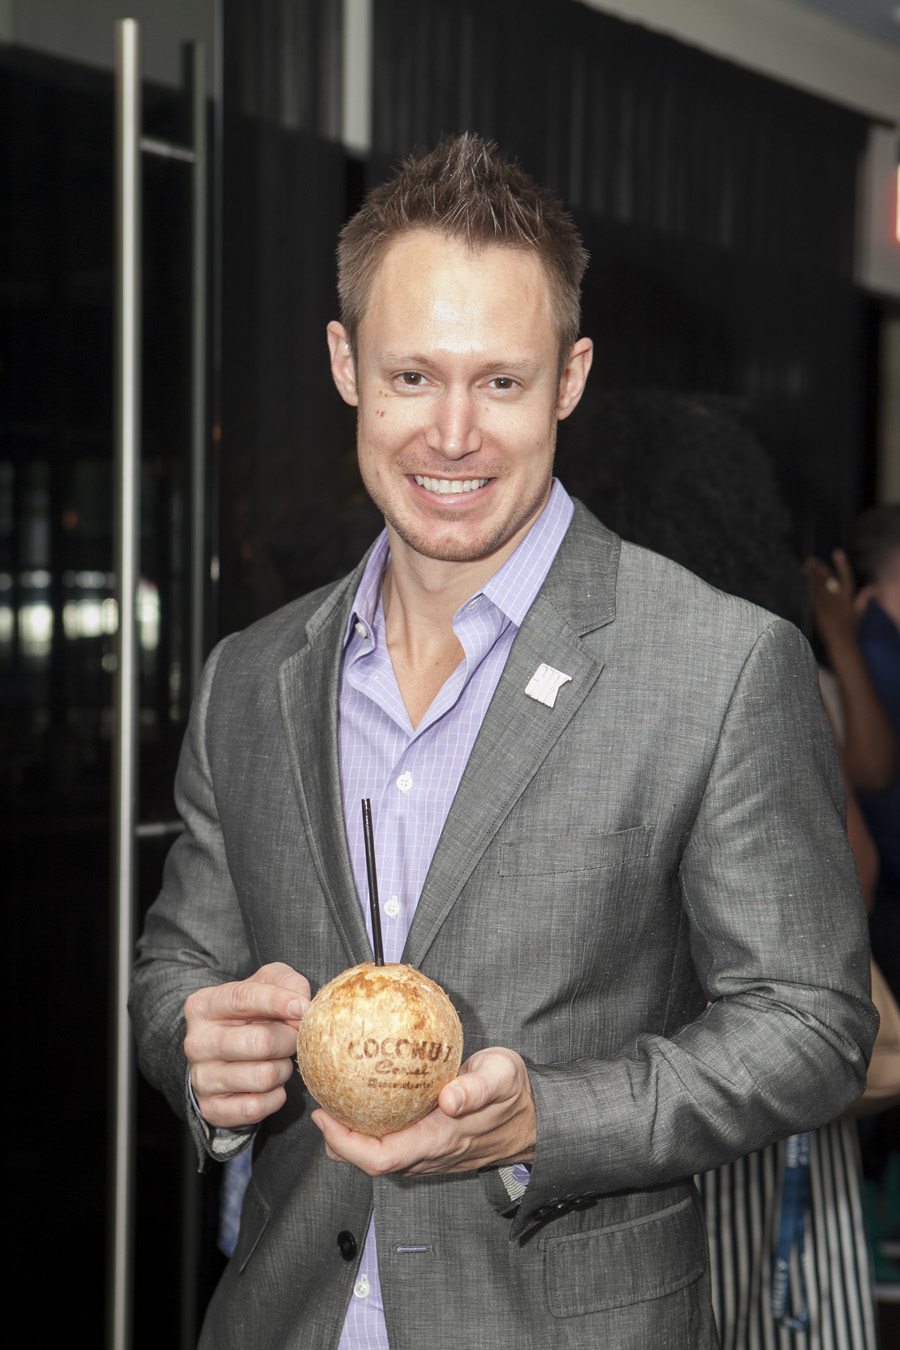 STK General Manager Ben Arndt